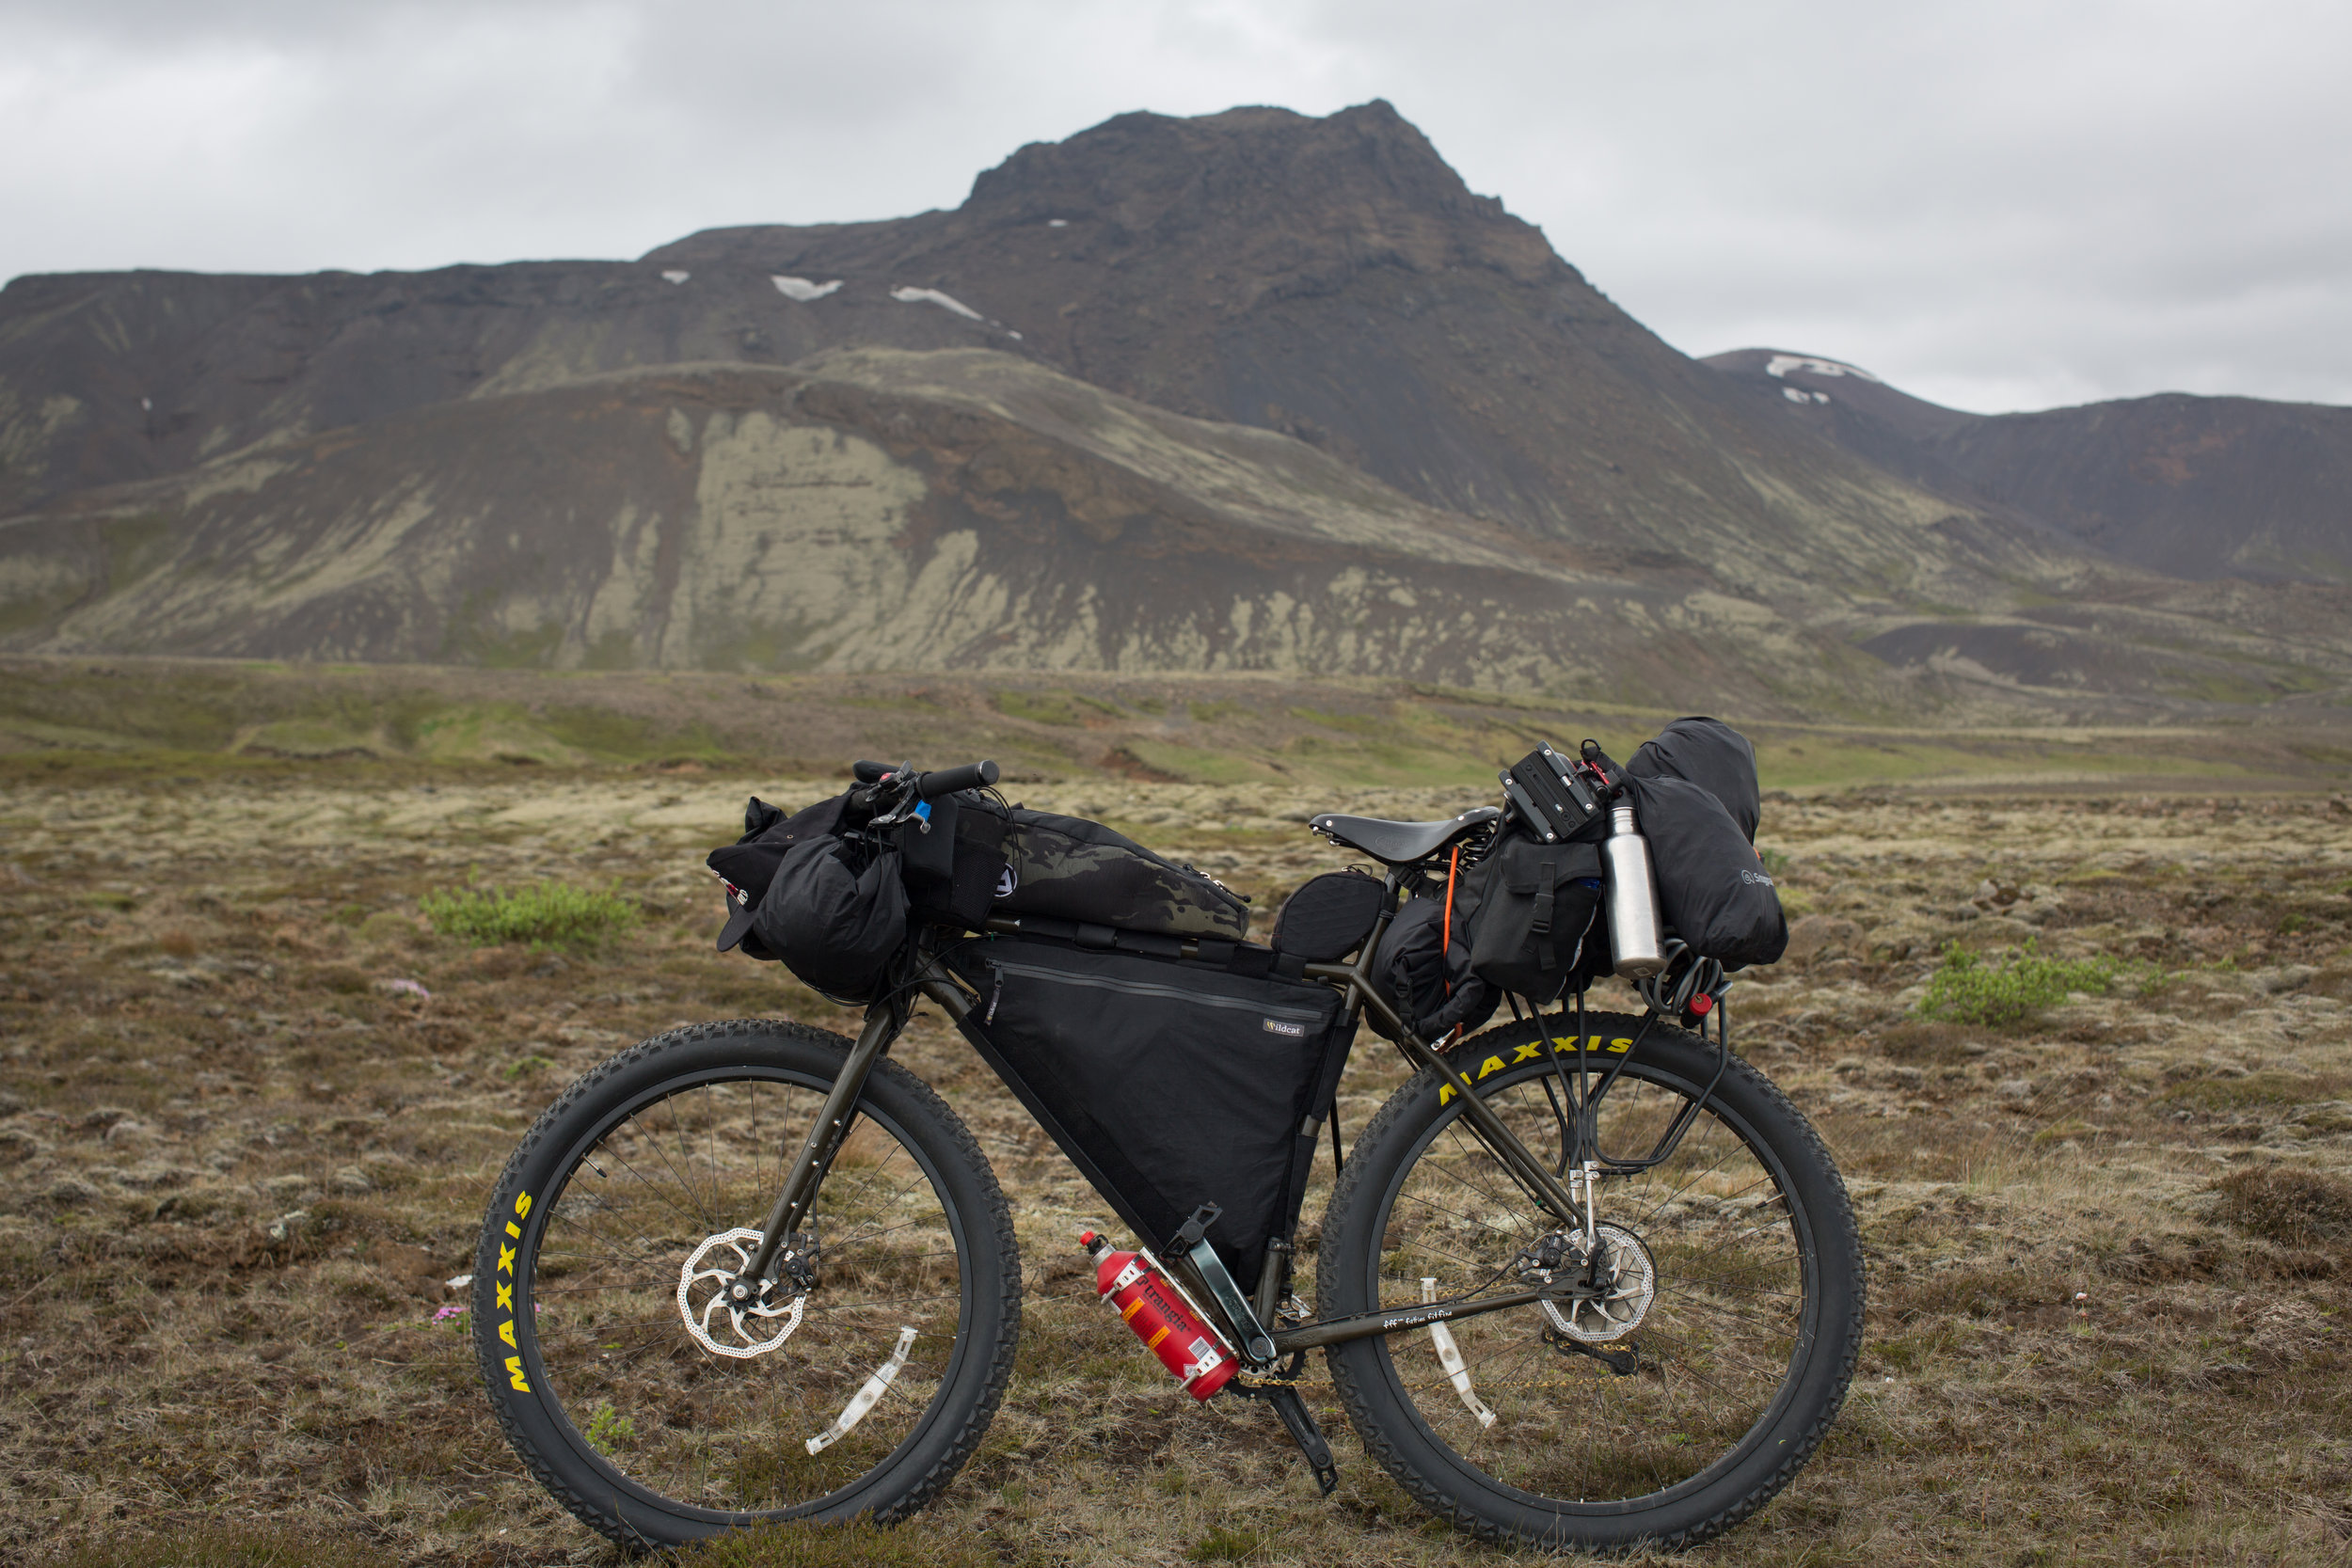 bikepacking, jack mac, jack macgowan, bikepacking blog, bicycle touring apocalypse, travel blog, bicycle, bicycle touring, cycling, bicycle touring blog, jack macgowan, cyclist, iceland, bikepacking iceland, surly, surly bikes, fat bike, 29er